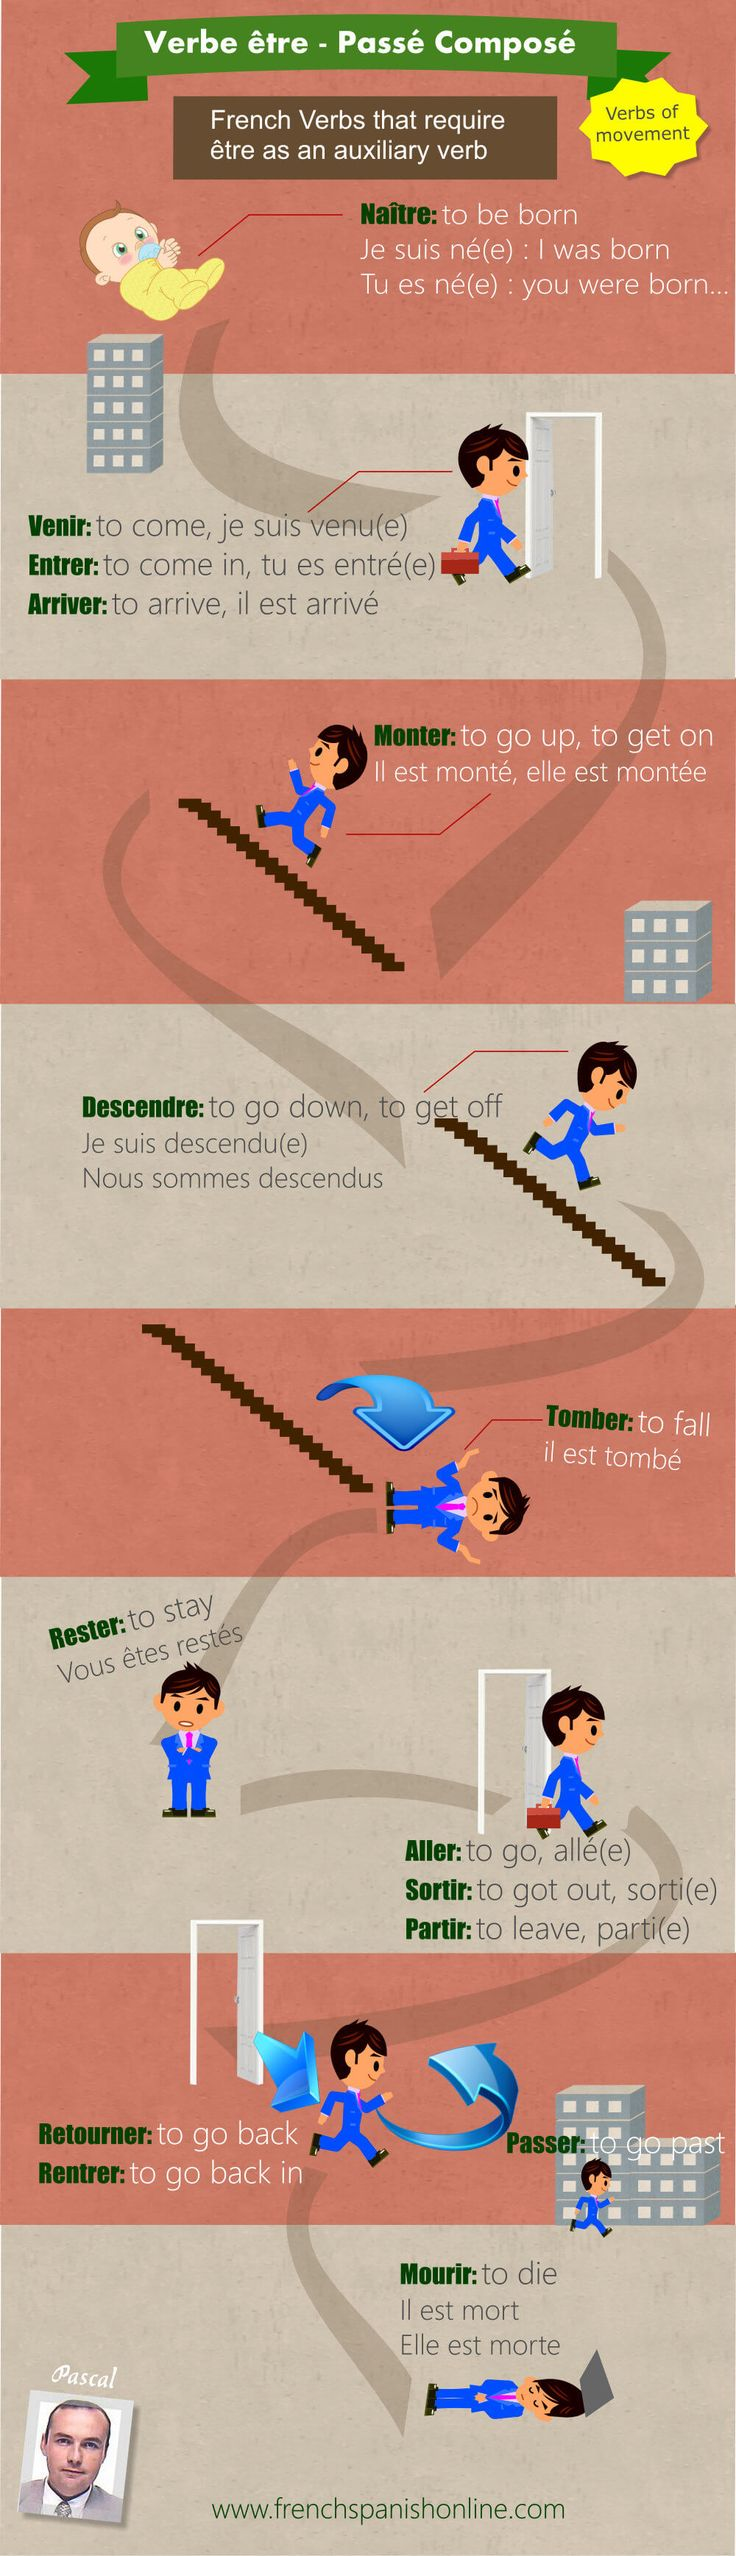 Passé Composé être: A picture to help with French verbs using être with past tense: a life story: http://www.frenchspanishonline.com/magazine/passe-compose/